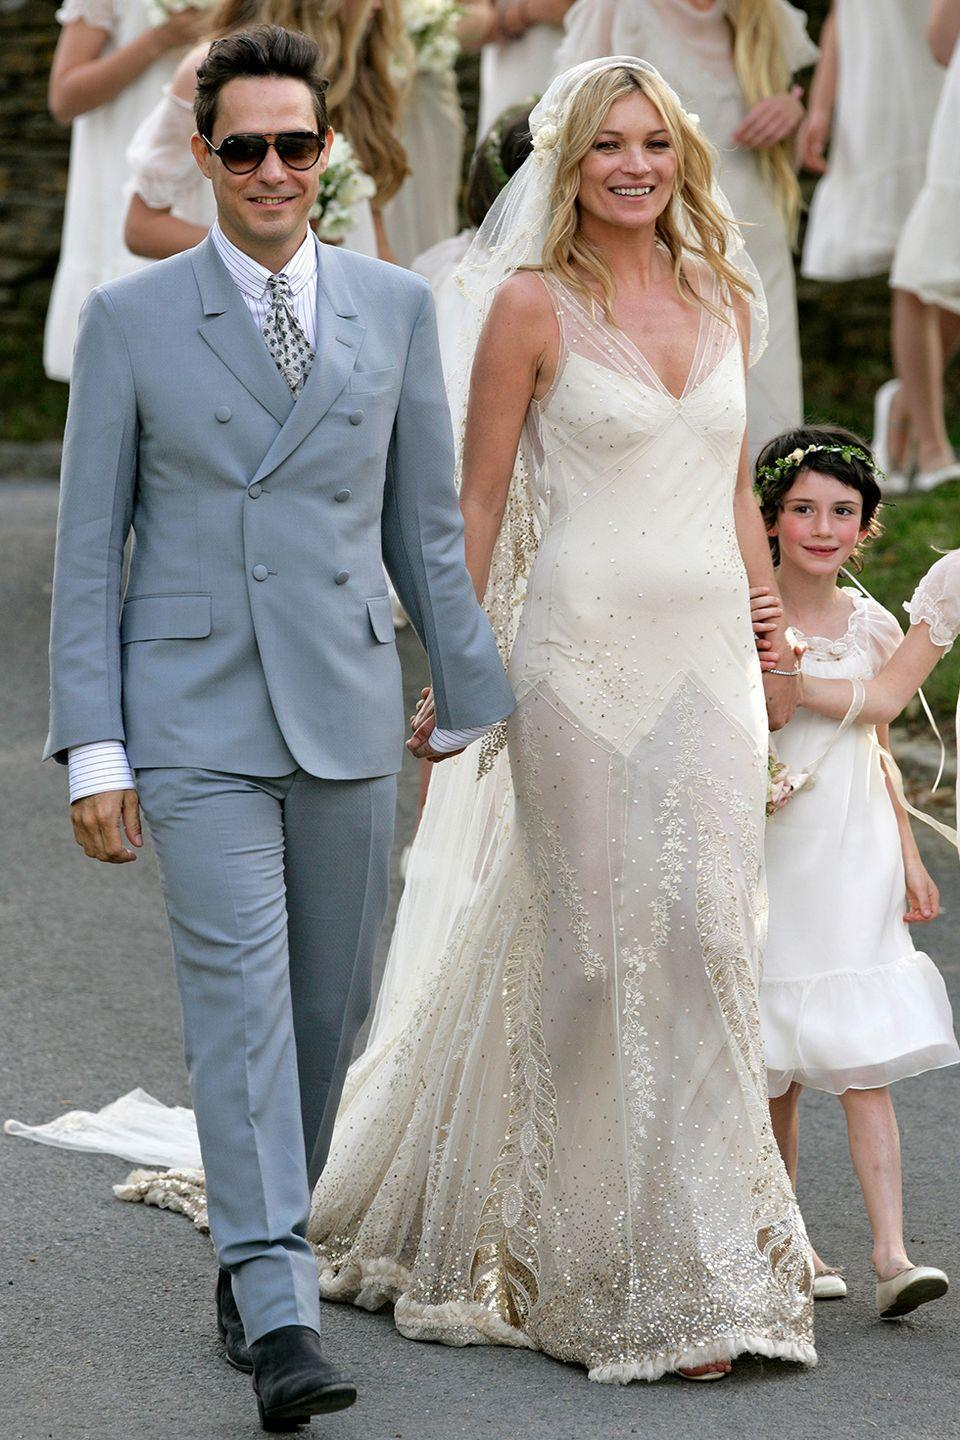 <p>Kate Moss built a career as a trendsetter, so of course her wedding dress wouldn't be any different. Her longtime friend and former Dior designer John Galliano made the supermodel a bohemian glam gown to tie the knot with rocker Jamie Hince. </p>